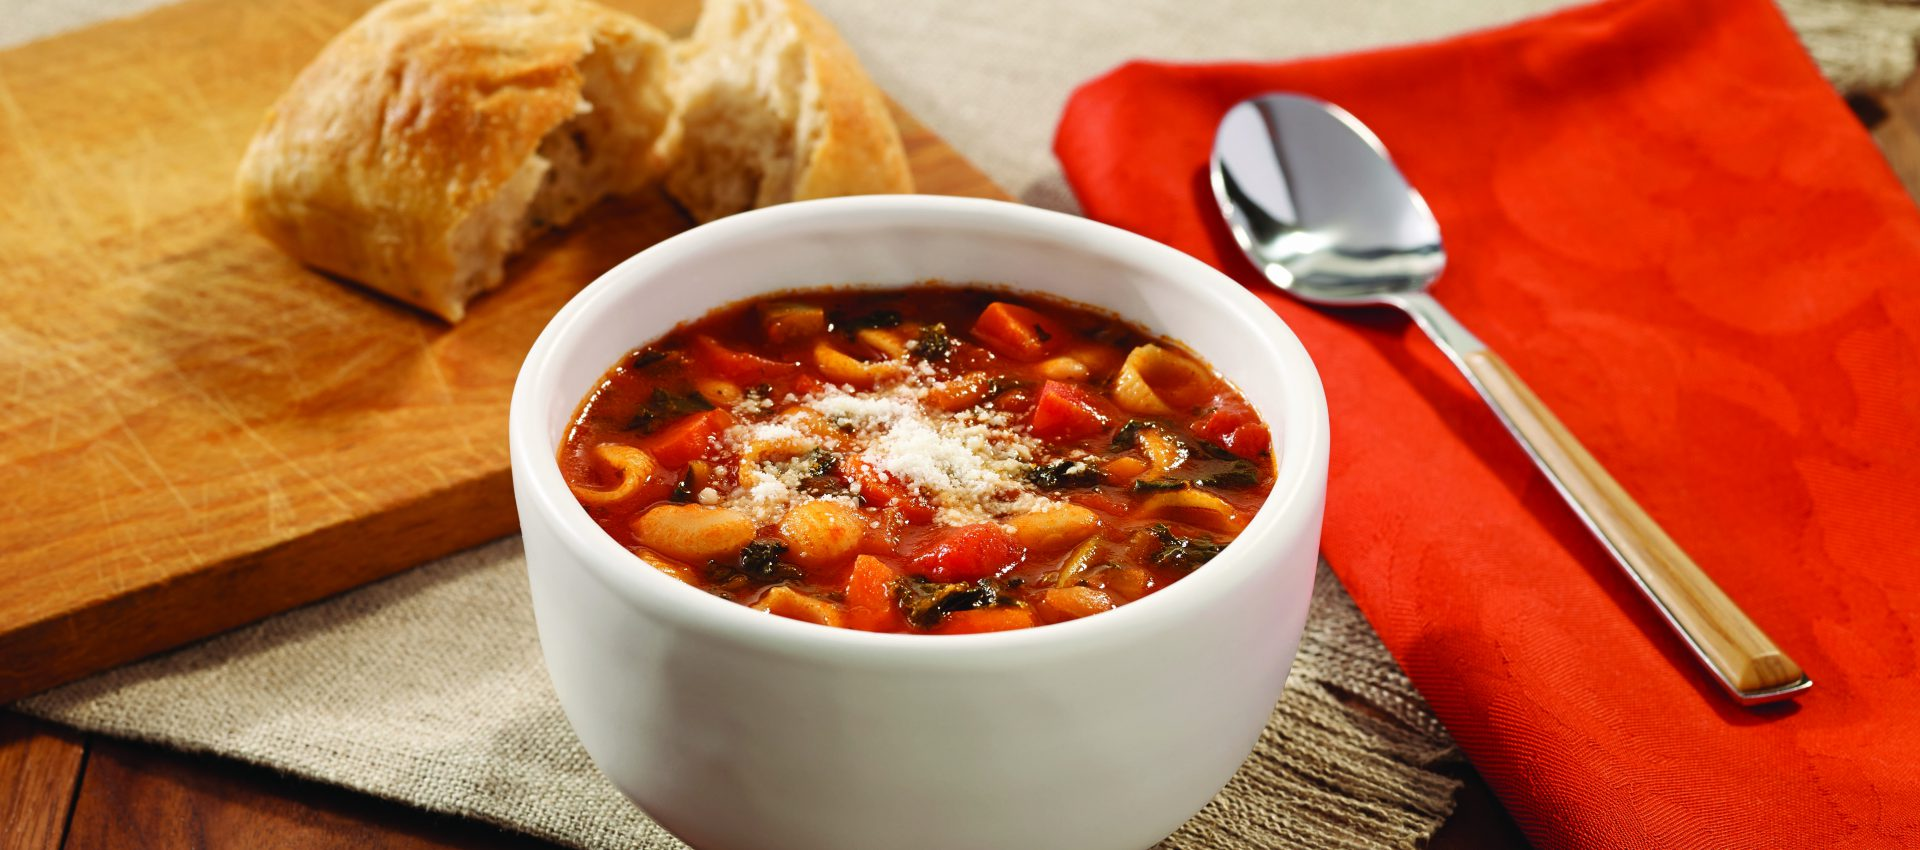 White-Bean-and-Kale-Minestrone-1920x850 Minestrone Soup with White Beans & Kale